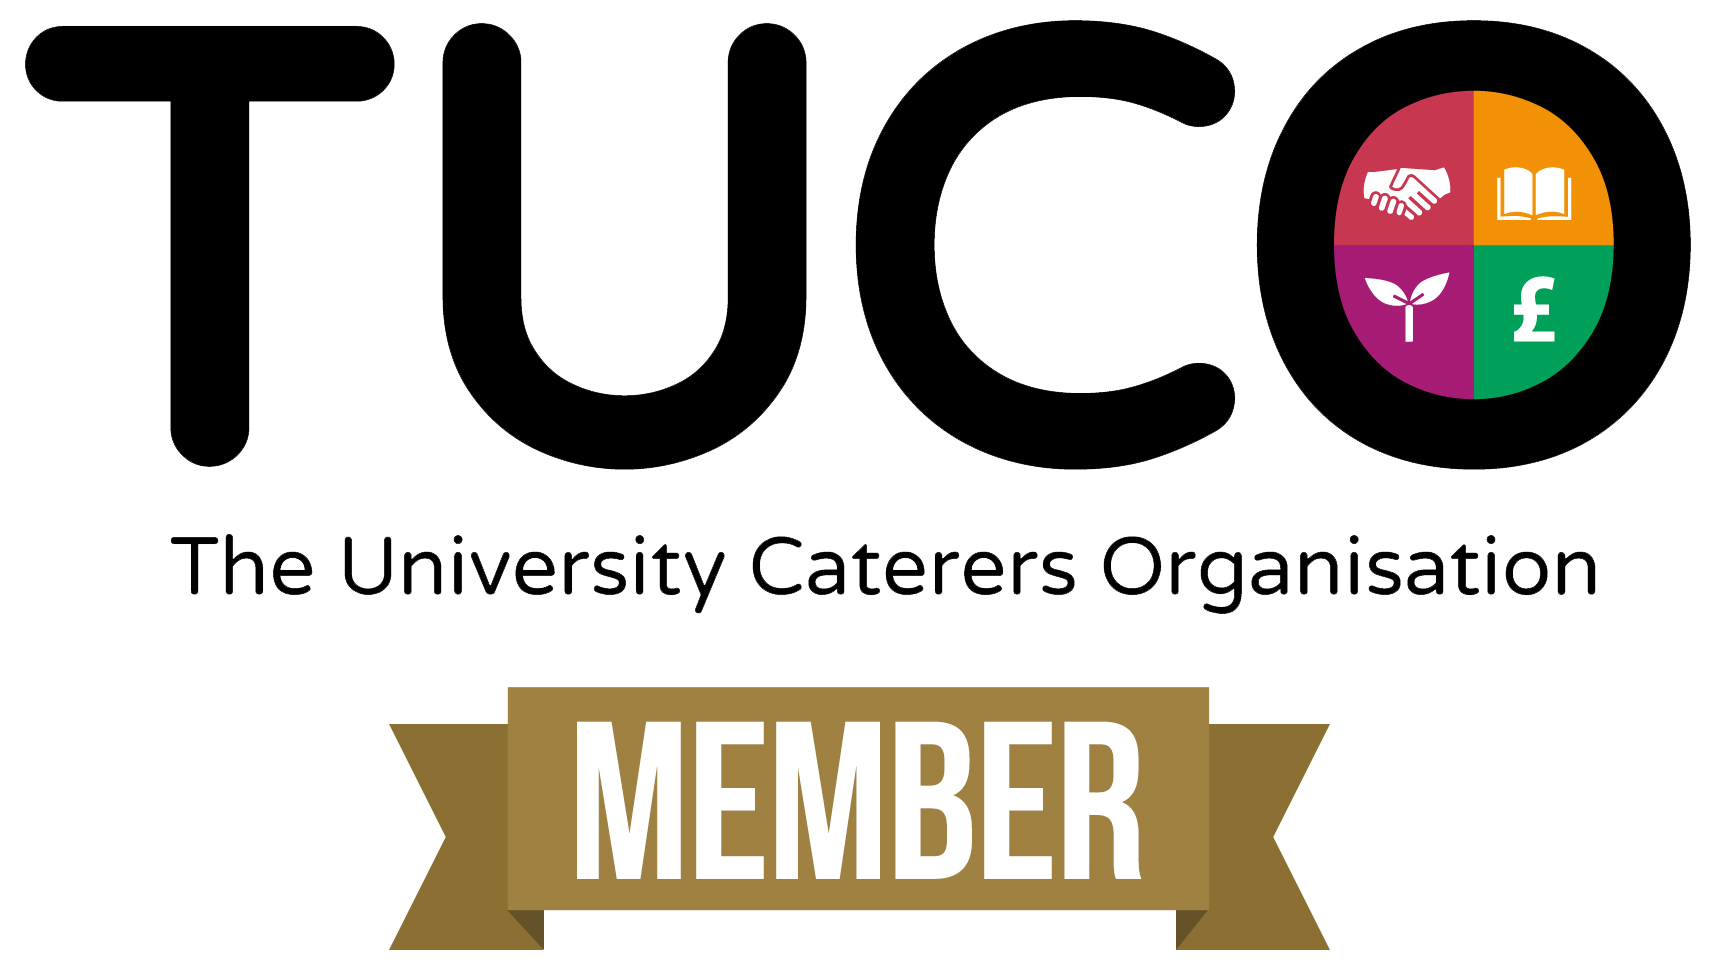 Stephensons are proud members of TUCO, The University Caterers Organisation